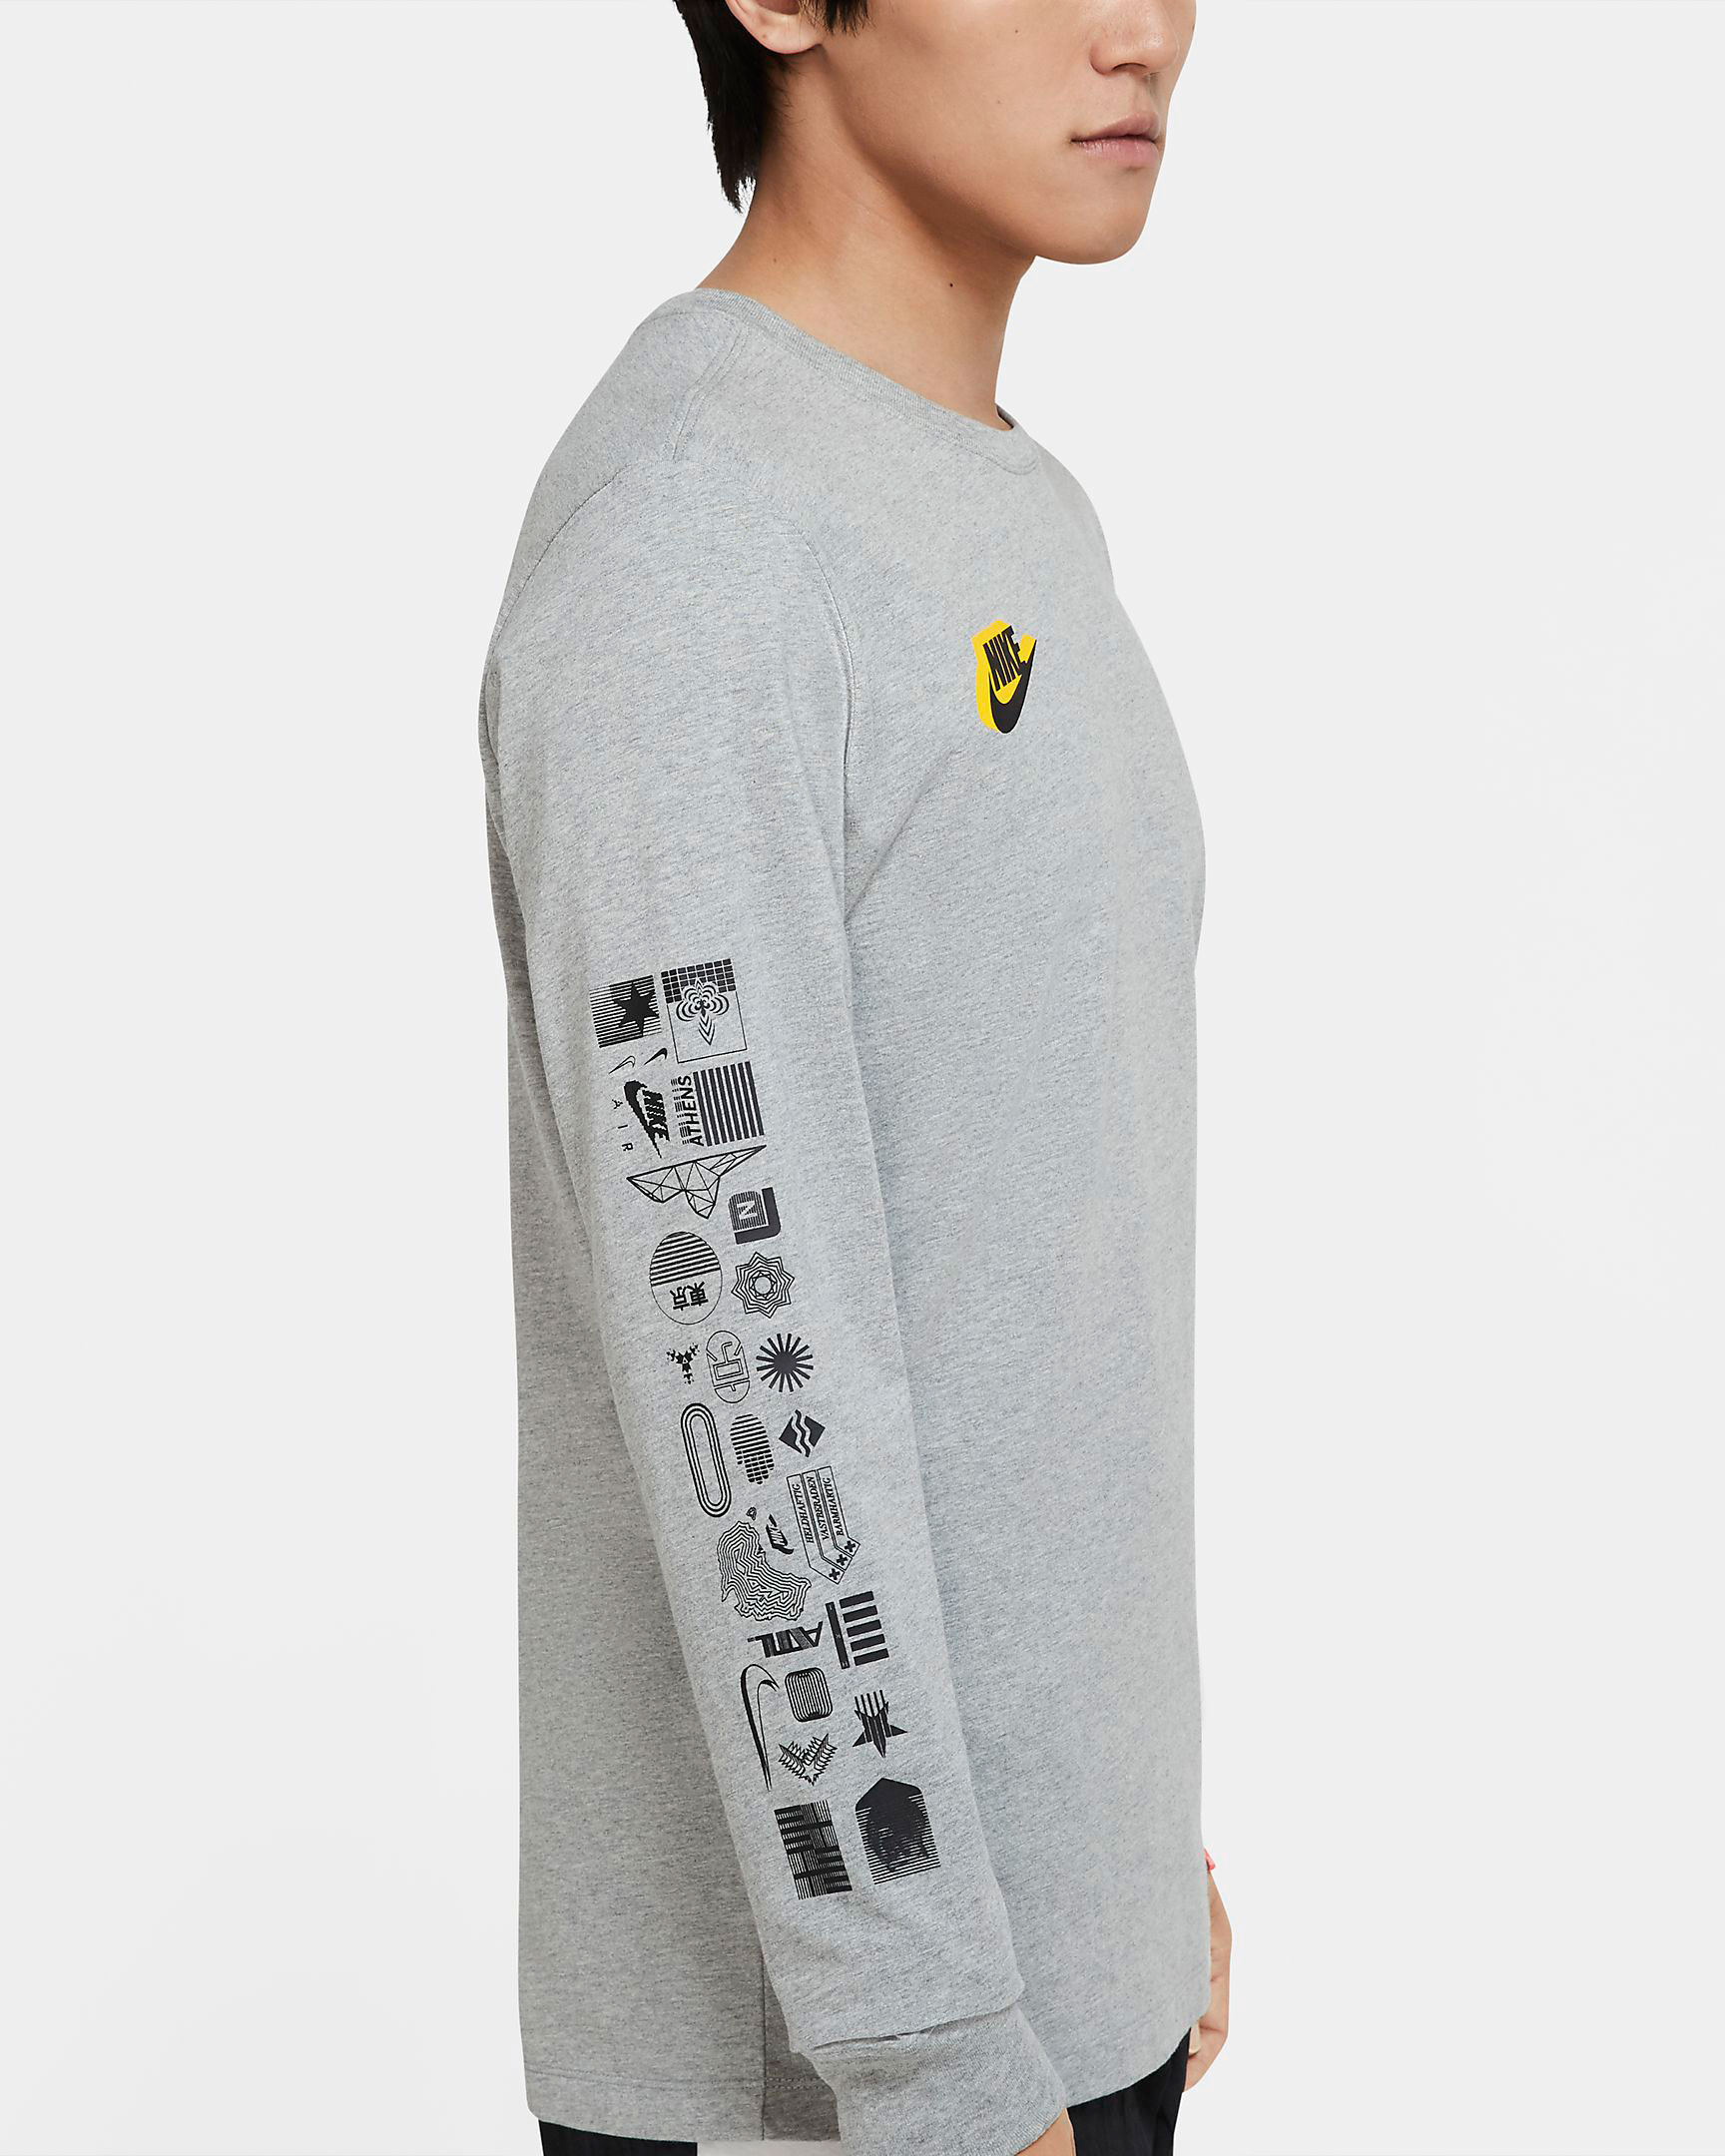 nike-worldwide-long-sleeve-shirt-grey-3